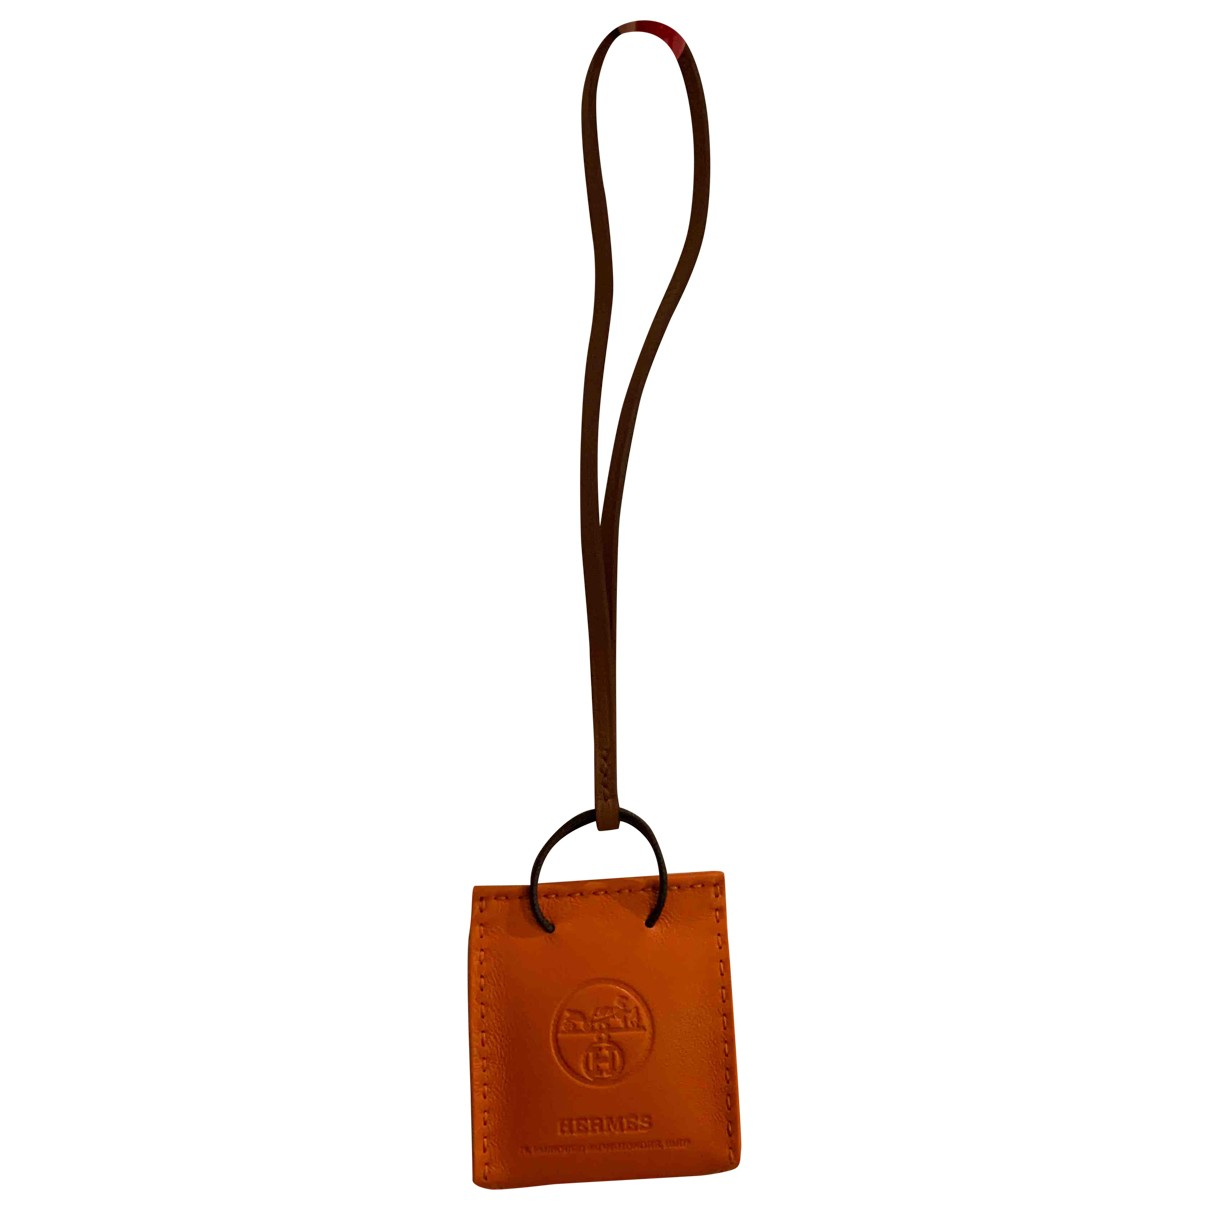 Hermès Shopping bag charm Orange Leather Bag charms for Women \N